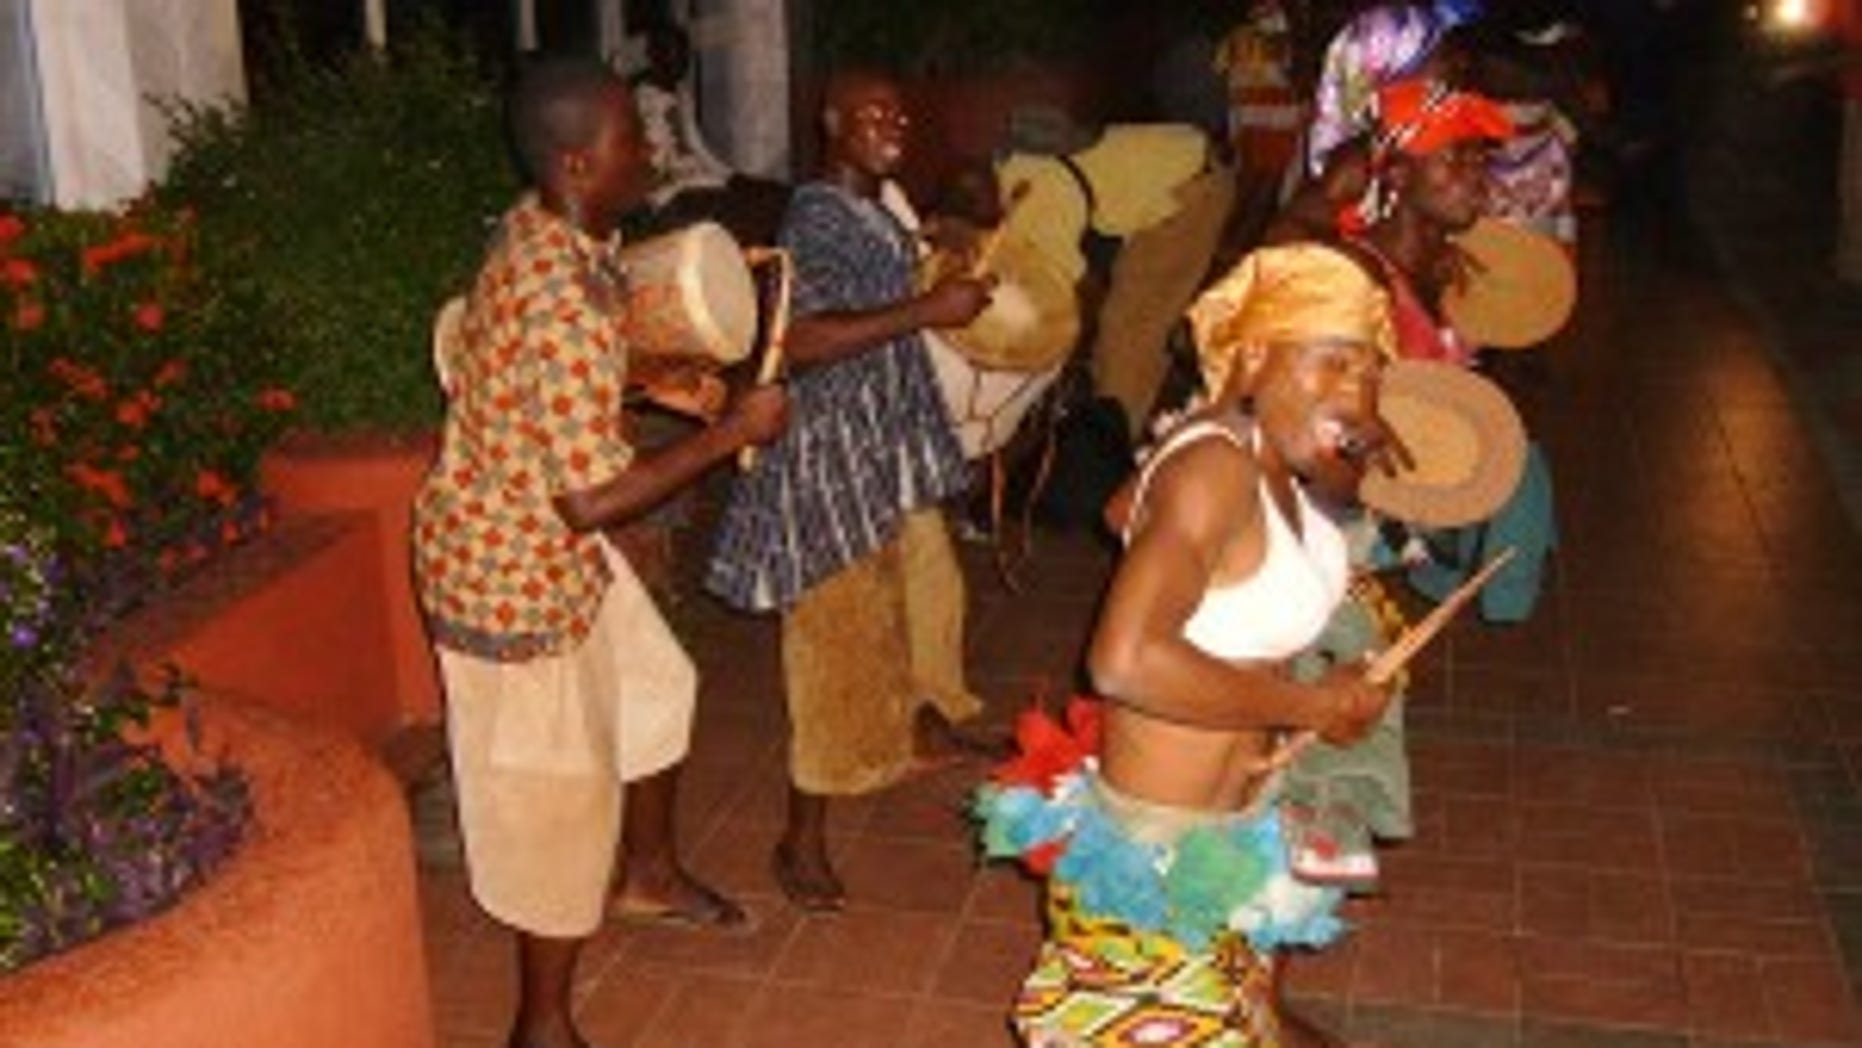 Ghanian dance troupe welcome the White House press corps (Photo by Major Garrett)